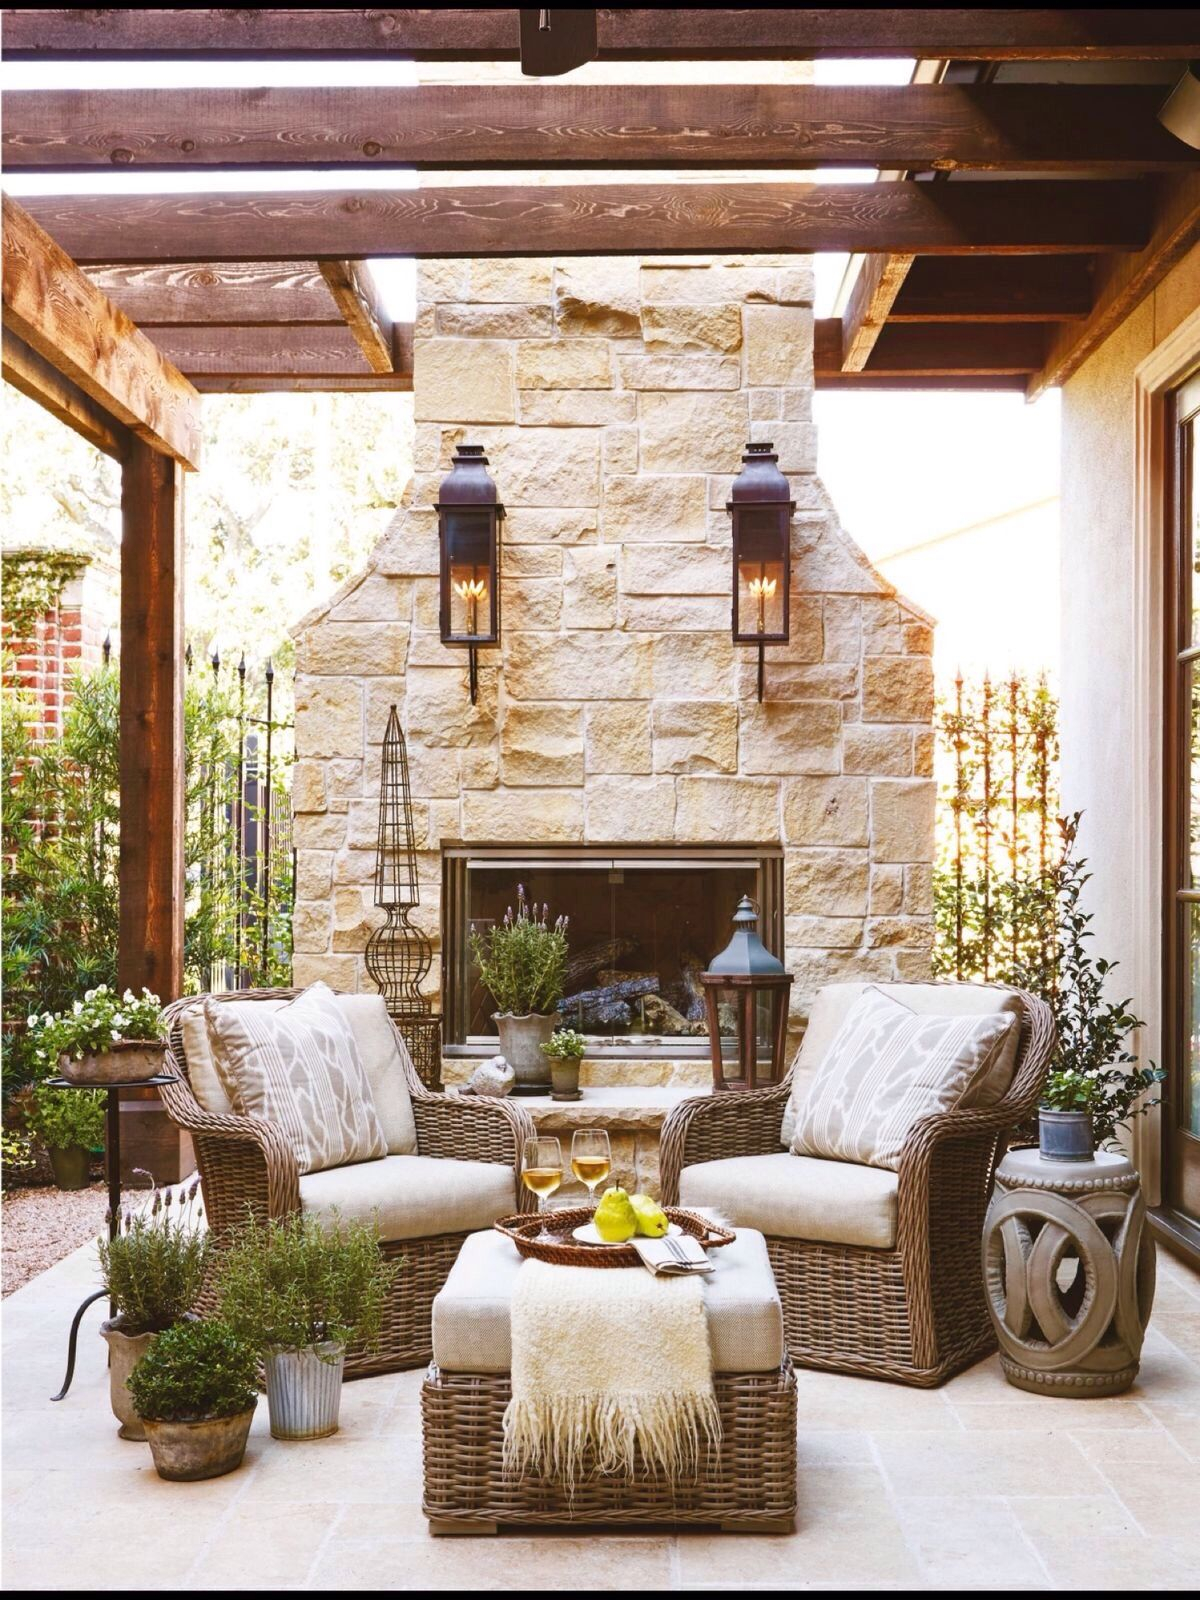 f494aafa92ce96b7407efaee5686f0f0 Top Result 50 Awesome Cost Of Outdoor Fireplace Picture 2018 Zat3